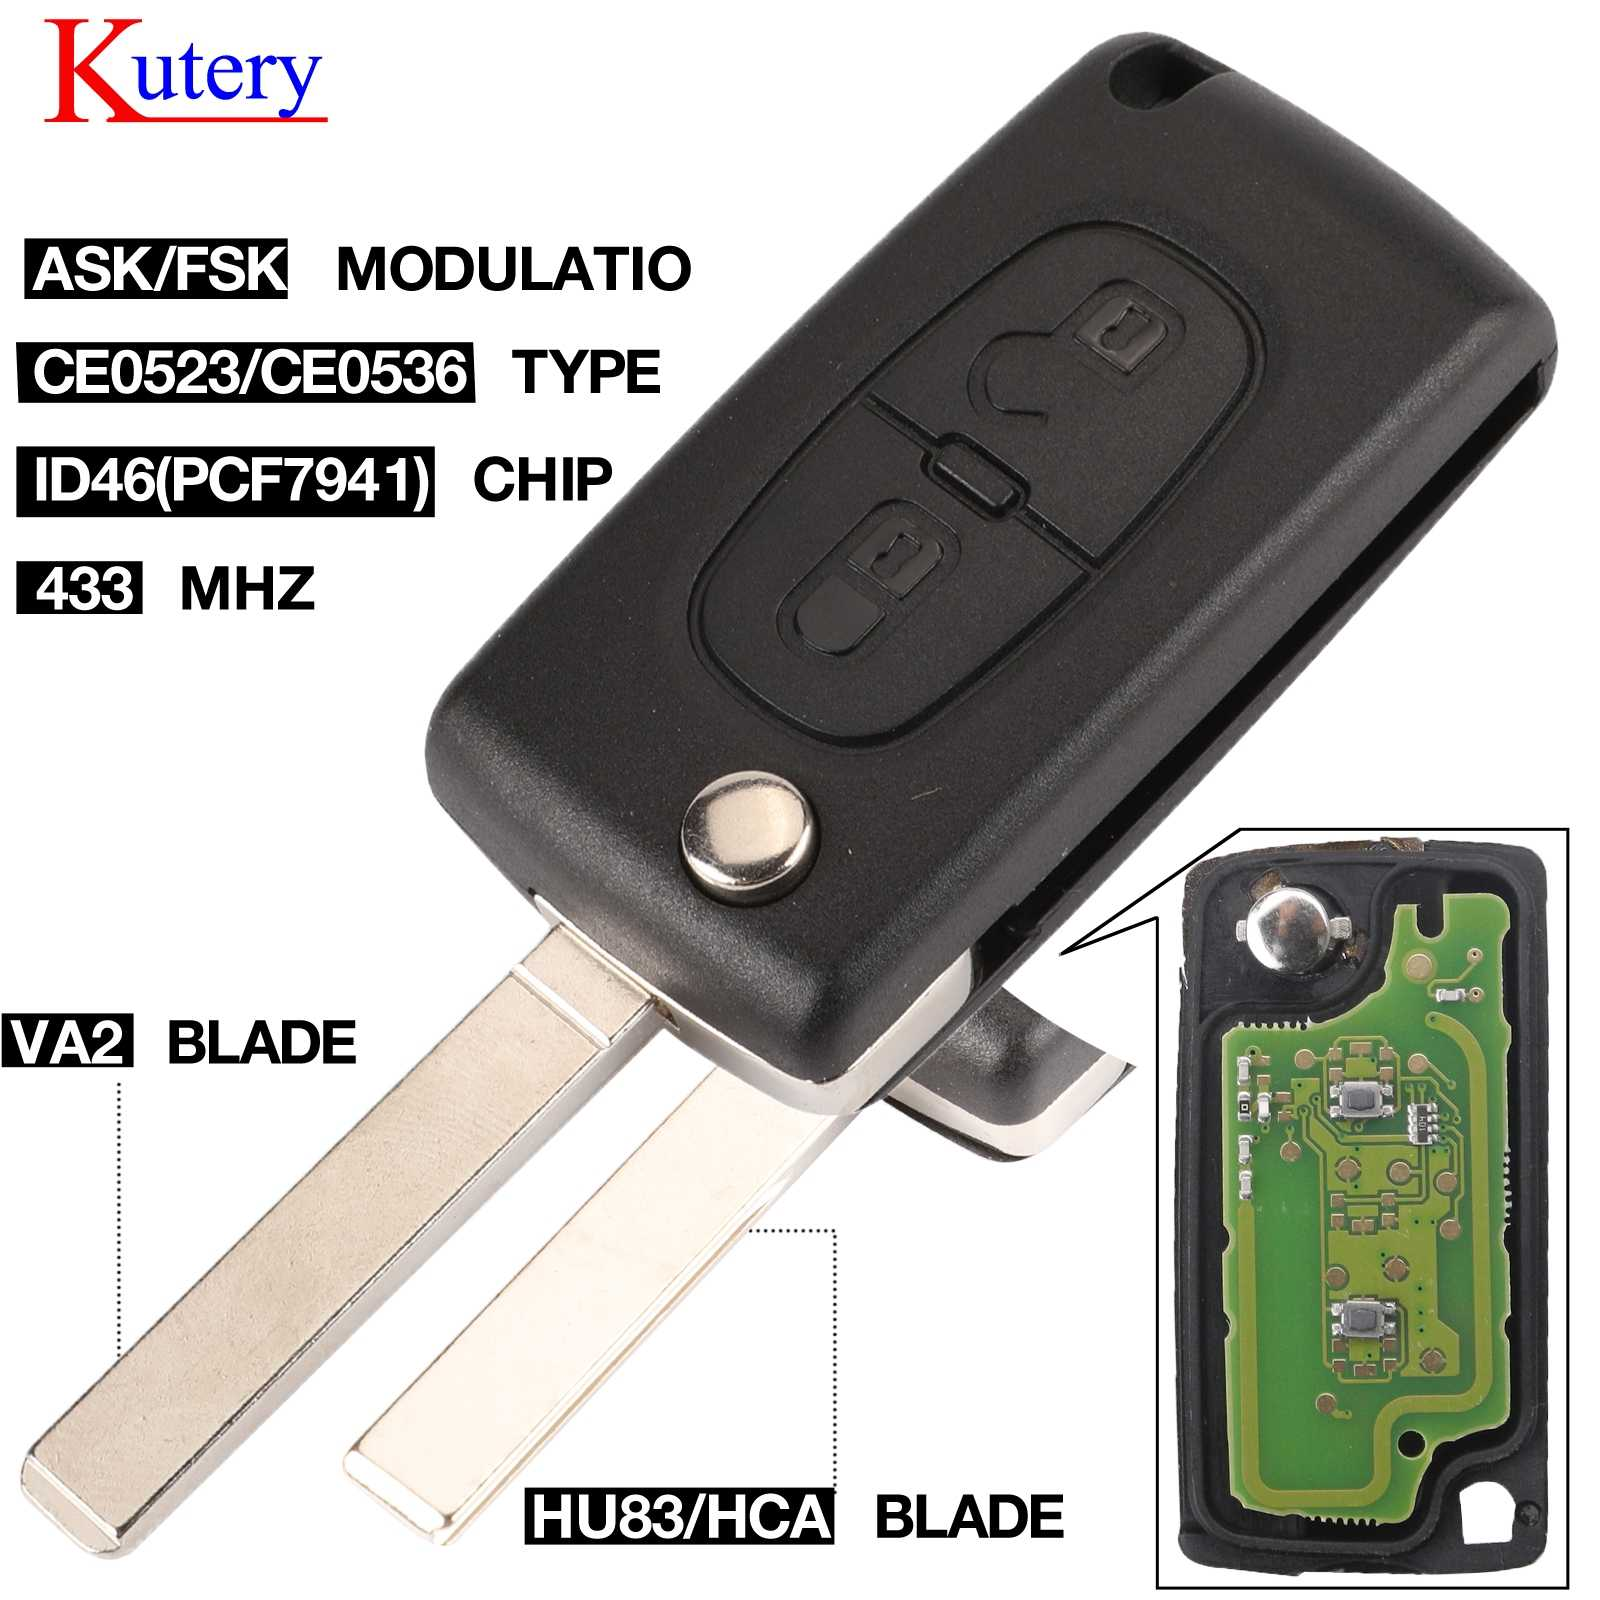 Kutery 434 433mhzのfsk/依頼 2 ボタンフリップキープジョー 107 207 307 307s 308 407 607 リモコンfob PCF7961 PCF7941 チップ